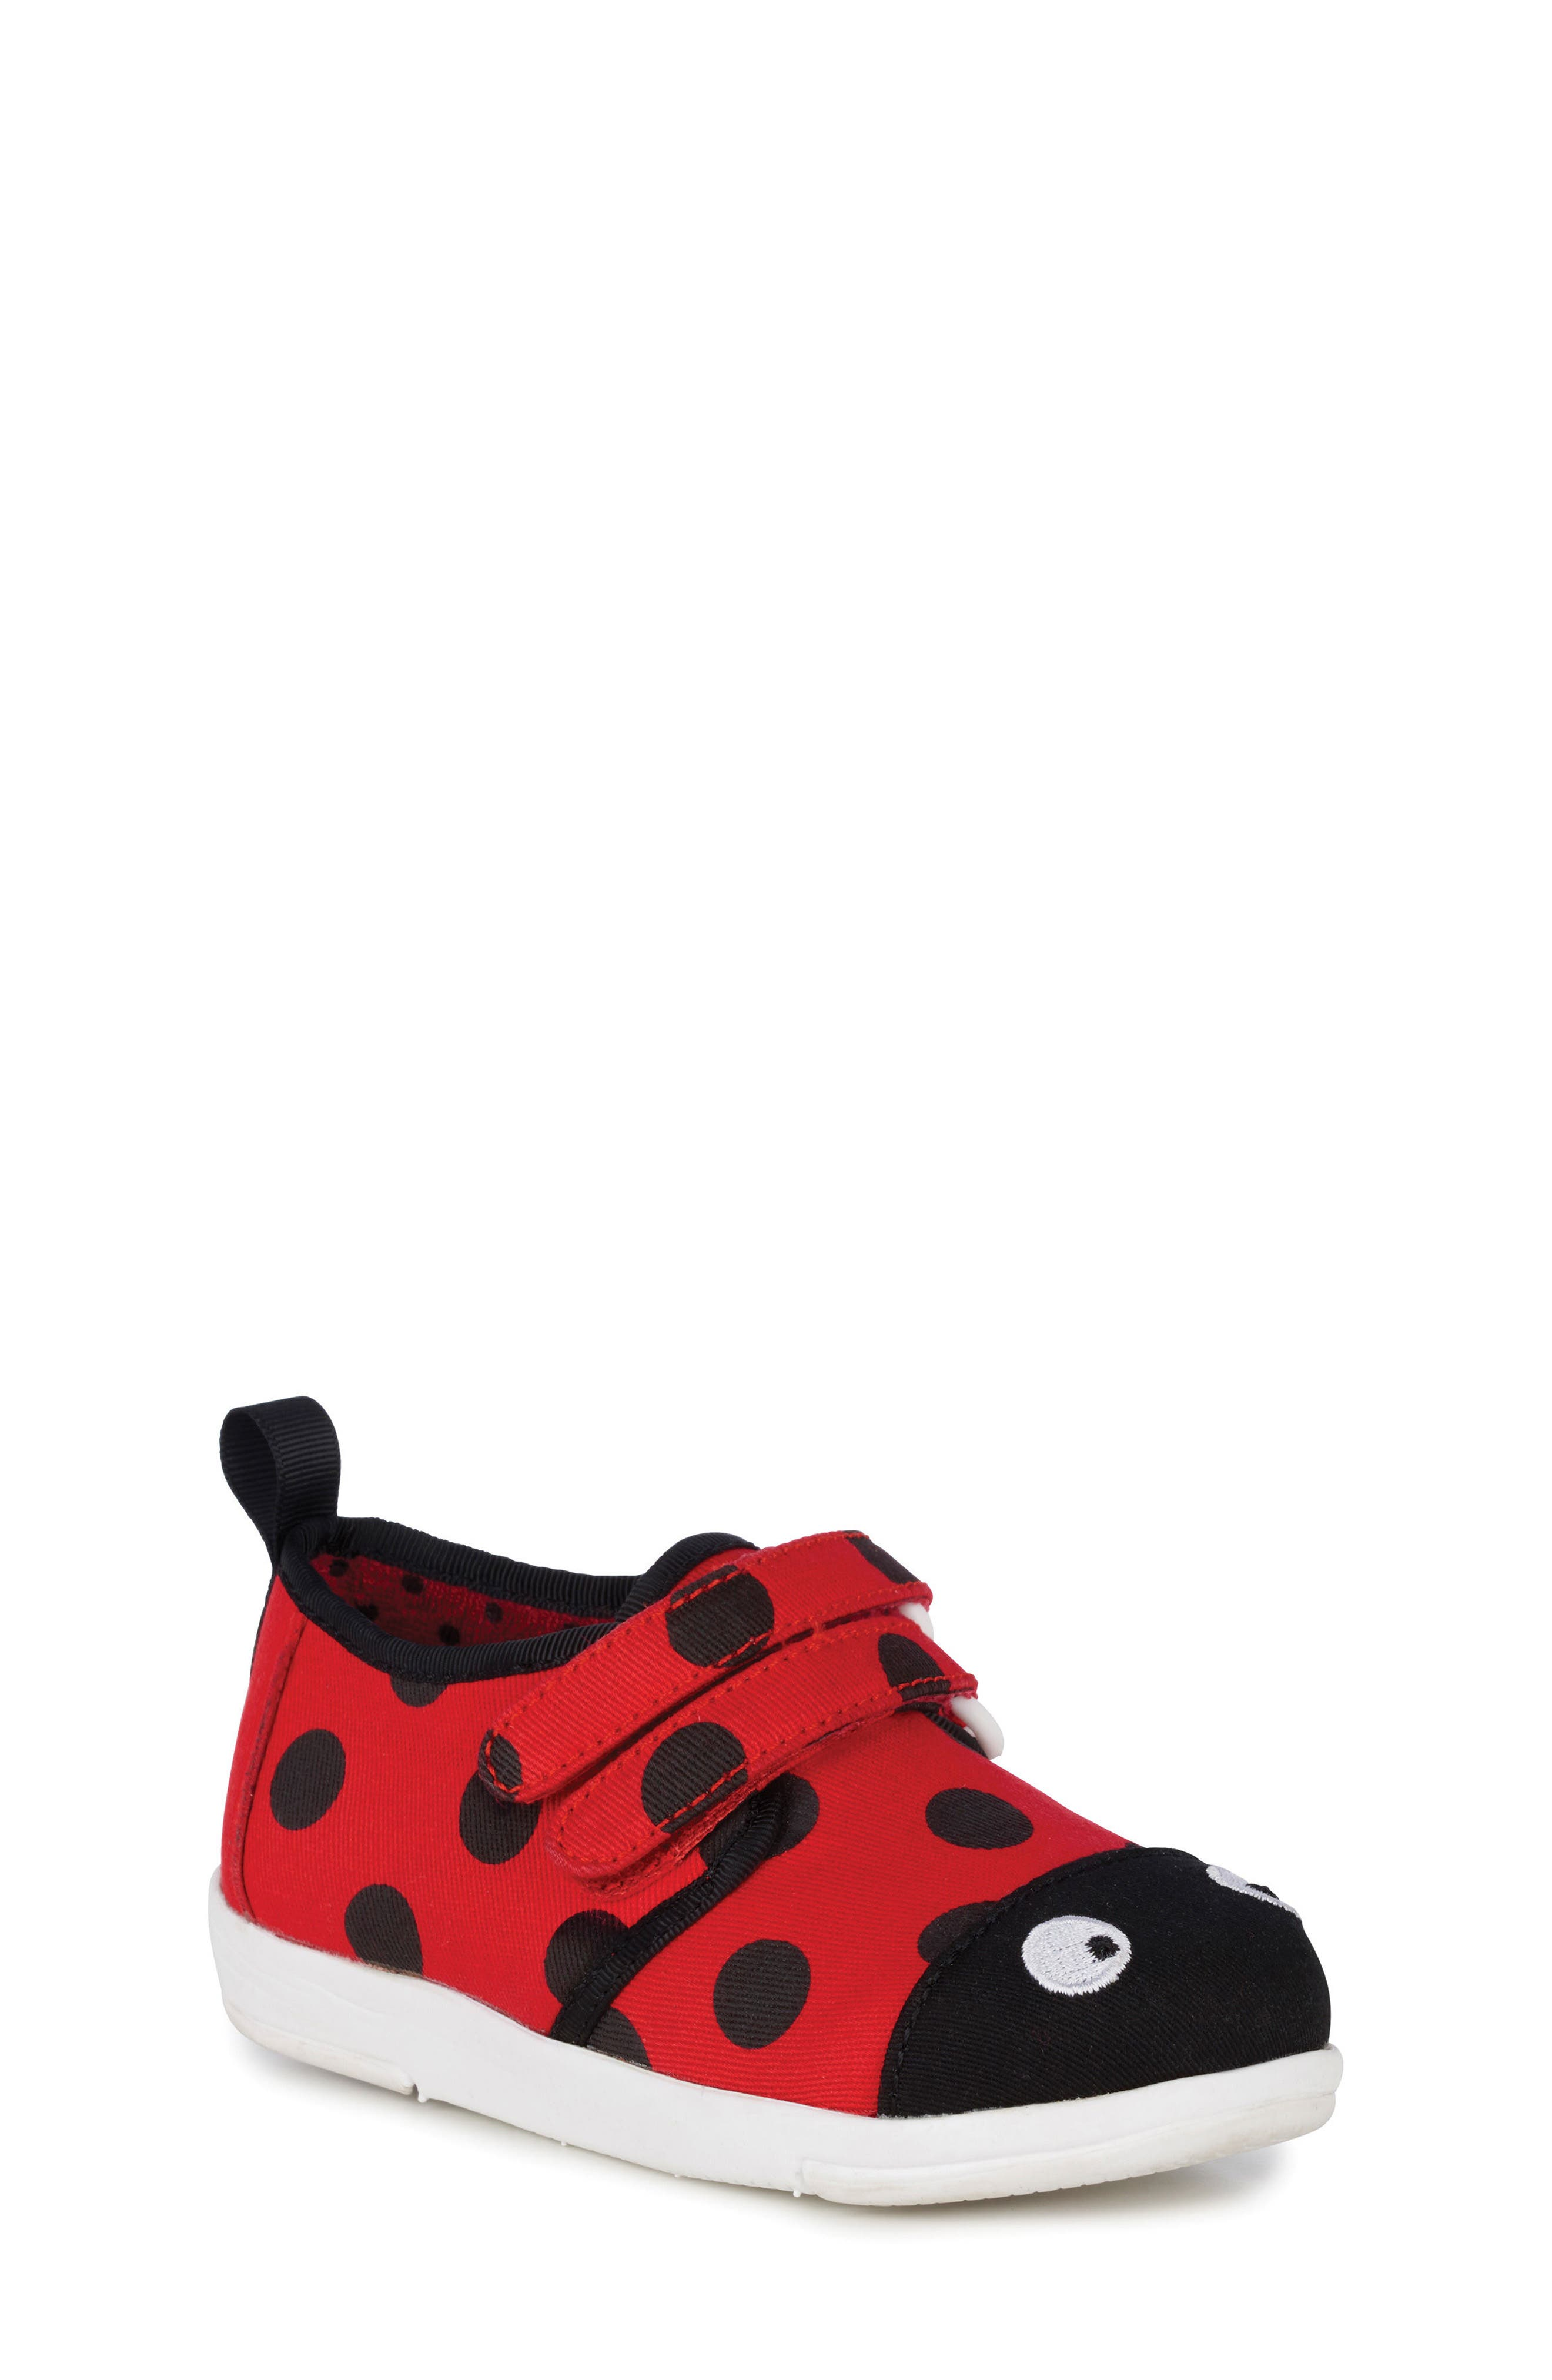 EMU Australia Ladybird Sneaker (Toddler, Little Kid & Big Kid)